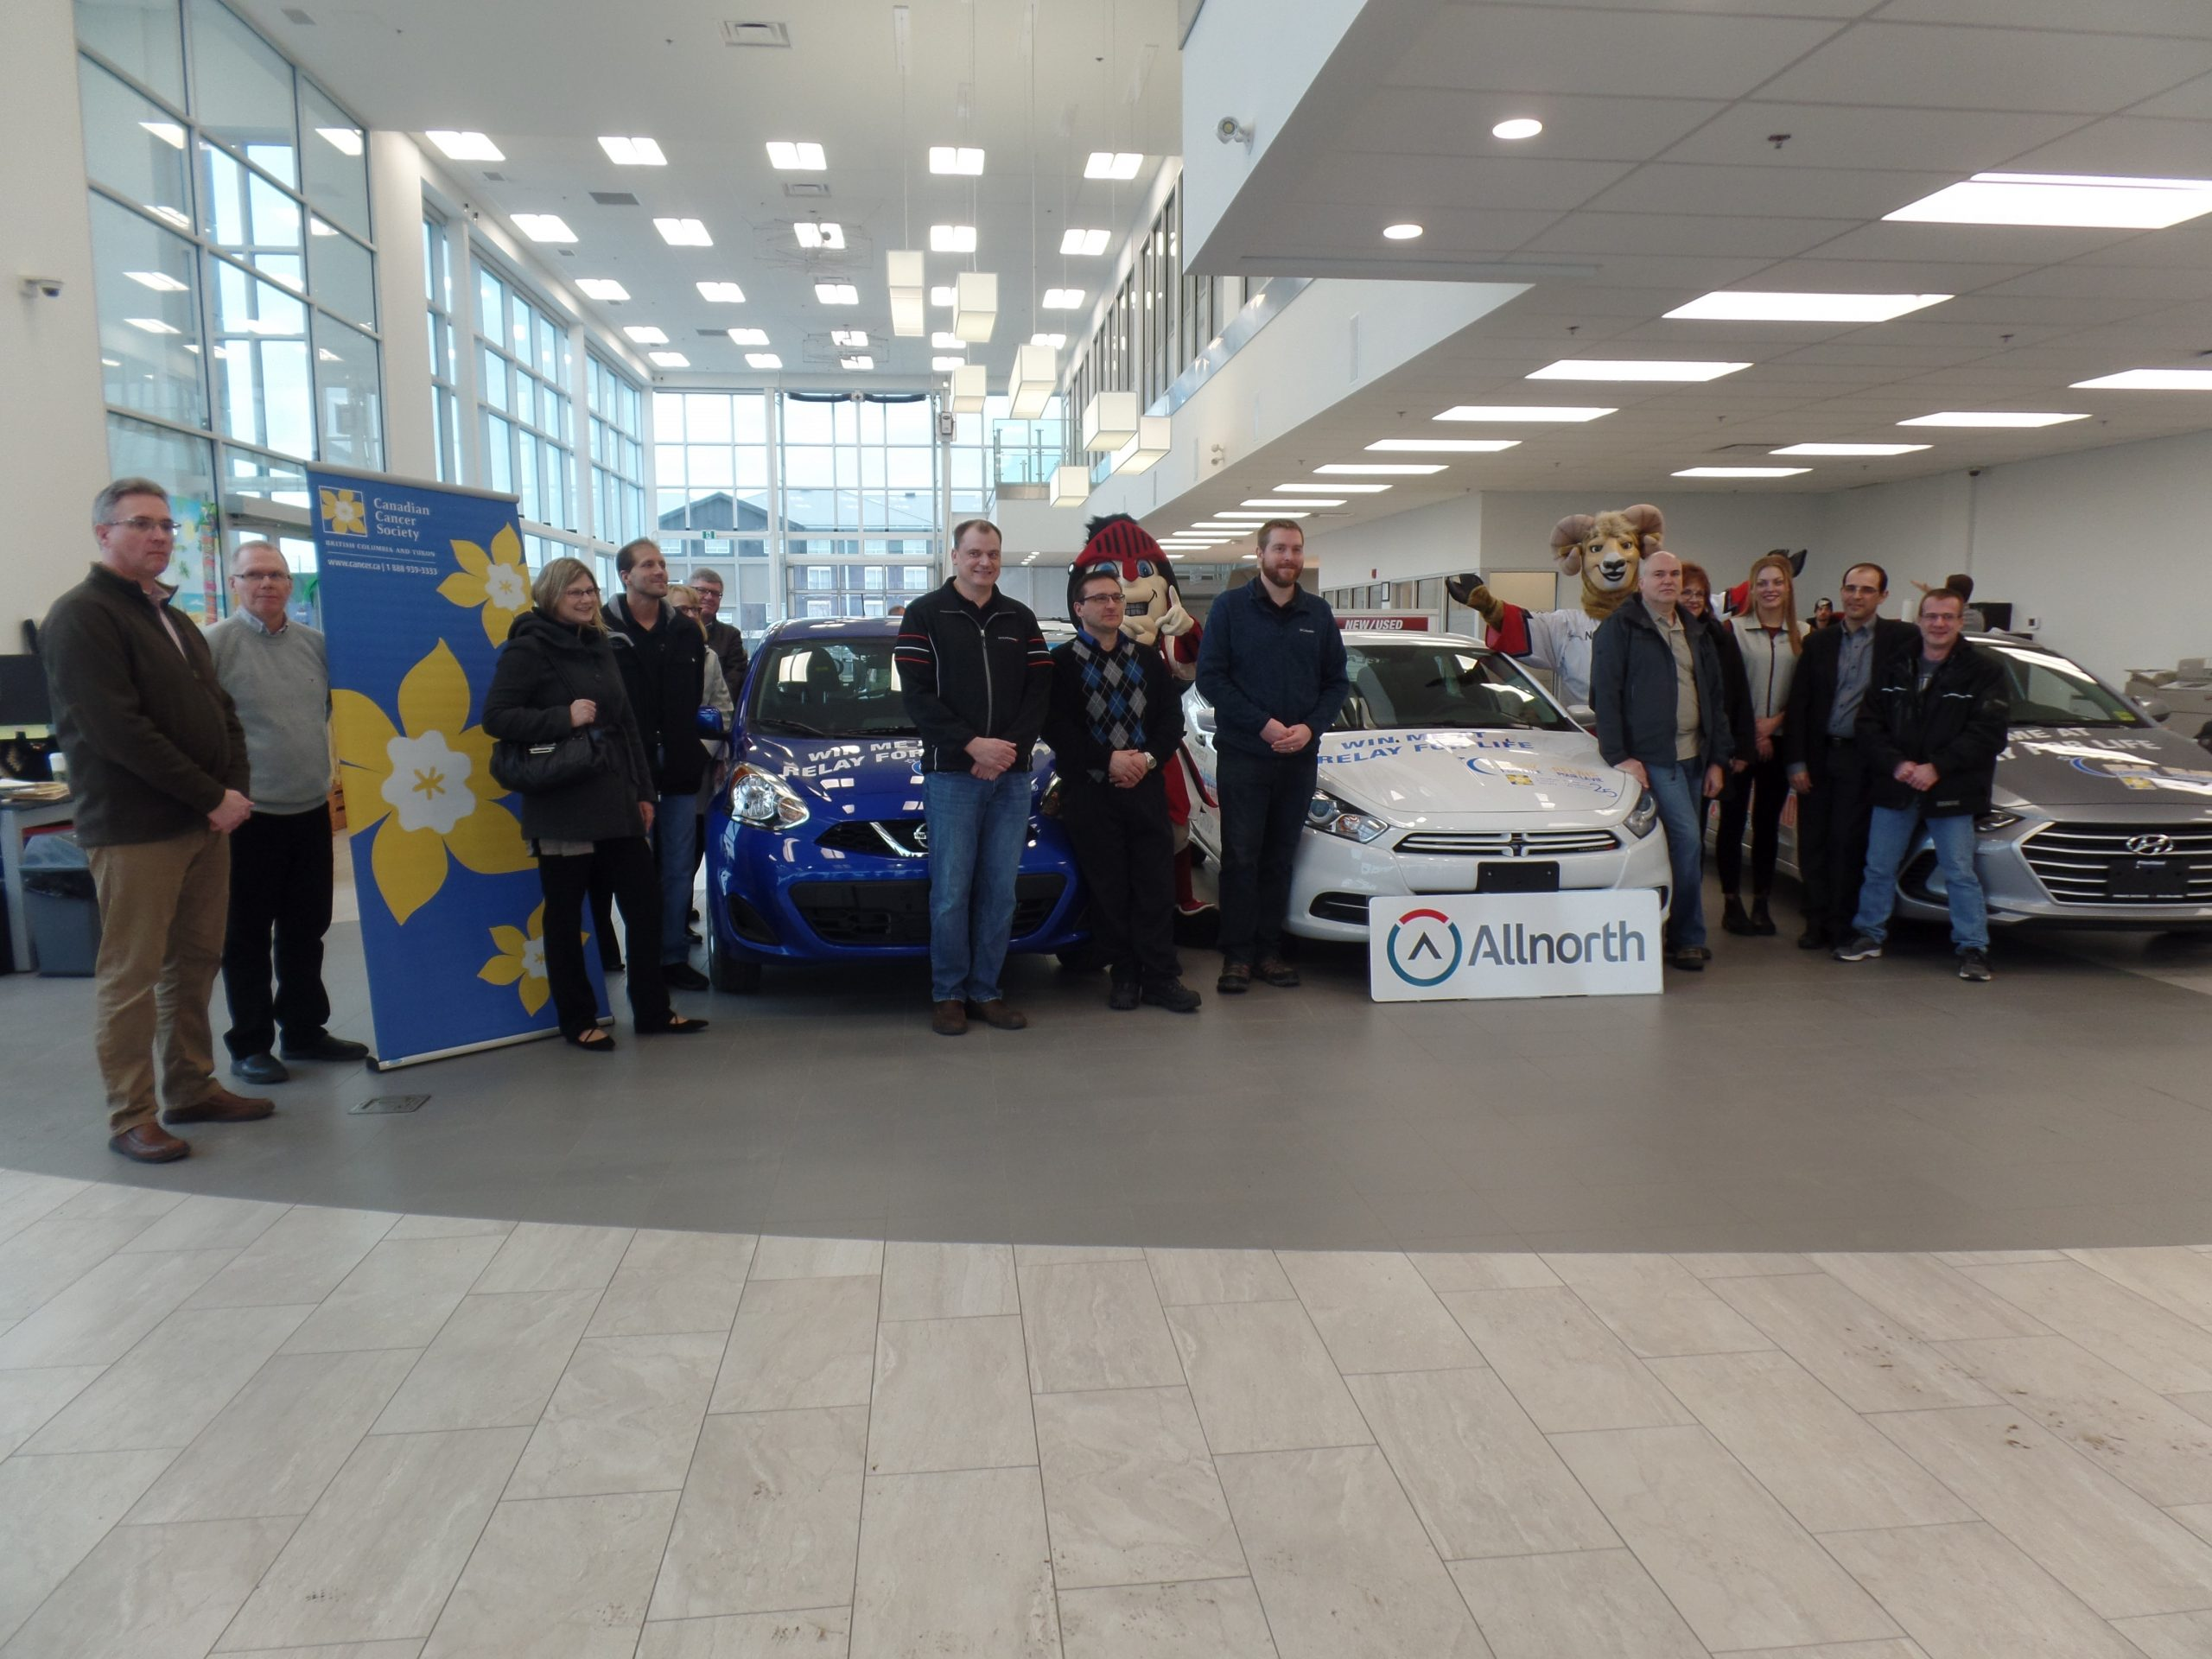 FunChaser @ Northland Chrysler Jeep Dodge Relay for Life Announcement